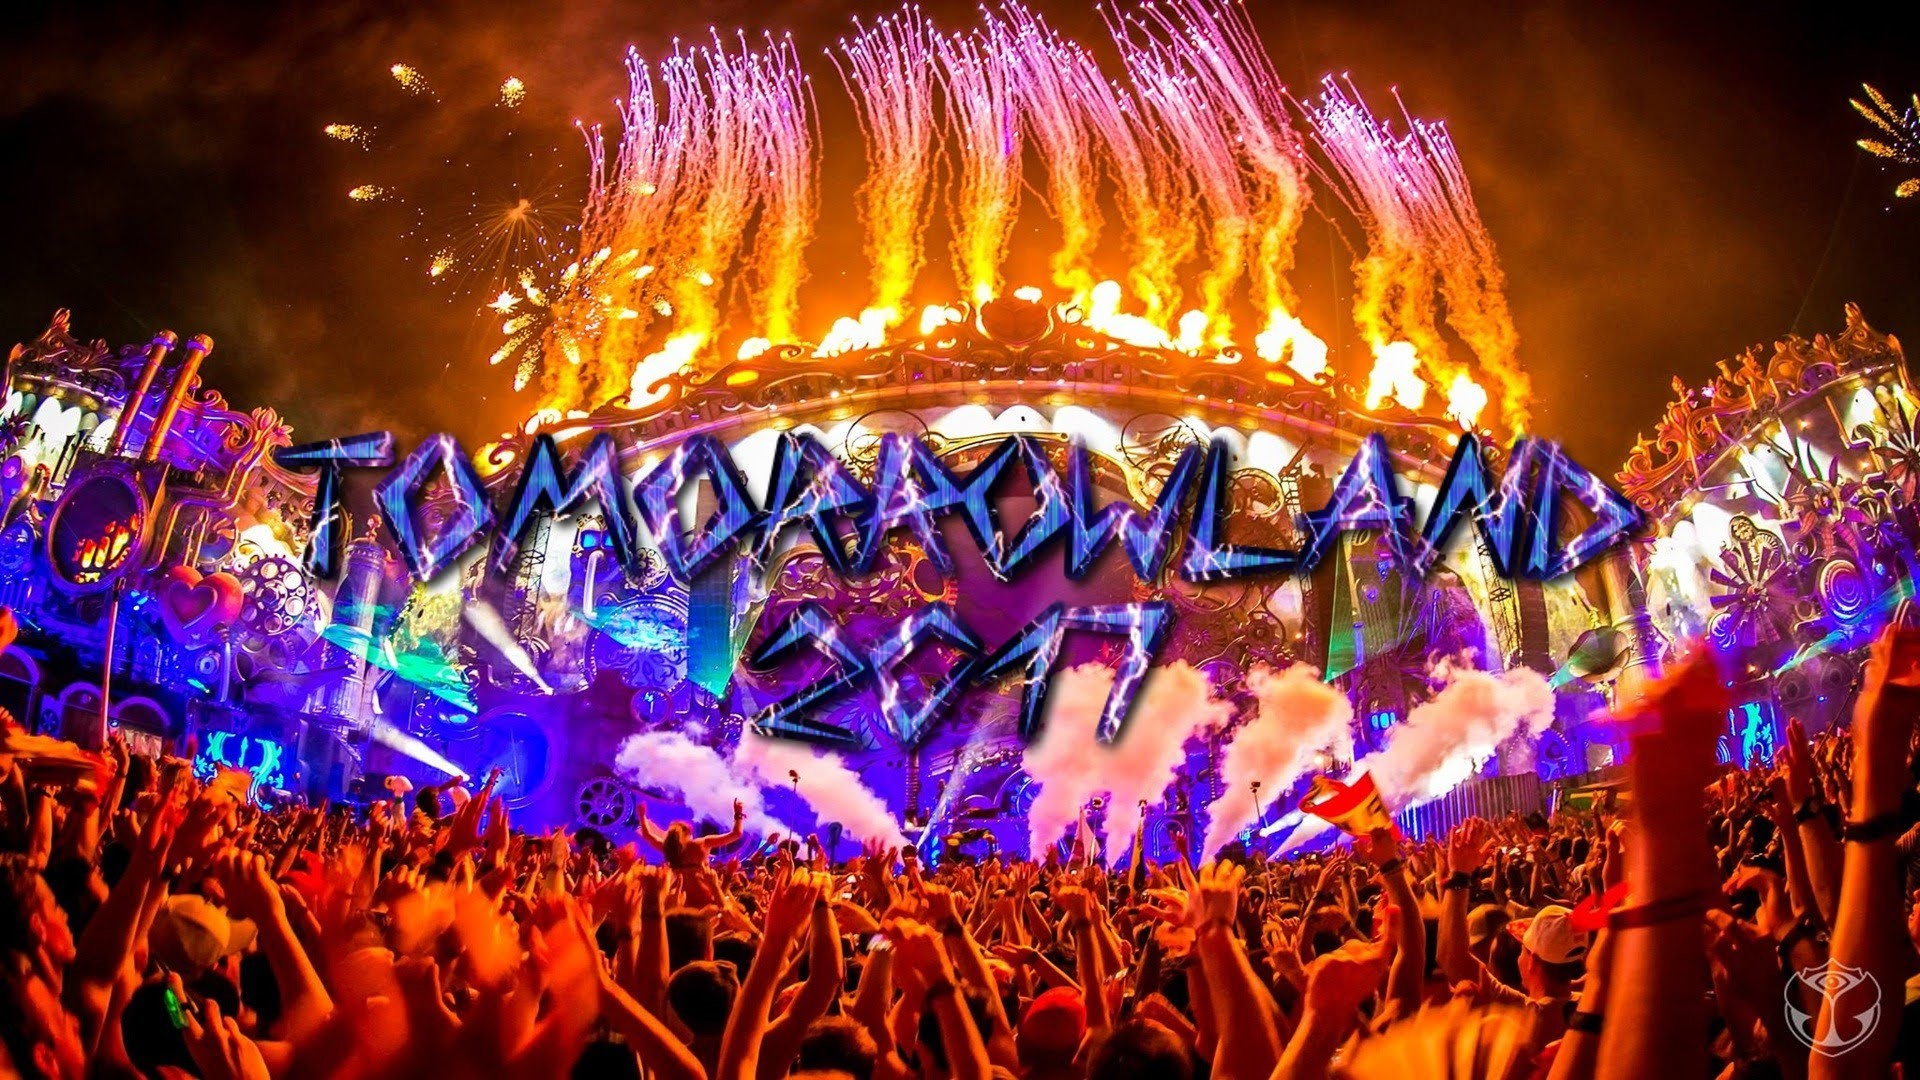 Where To Download Iphone X Live Wallpapers Edm Festival Wallpaper 81 Images